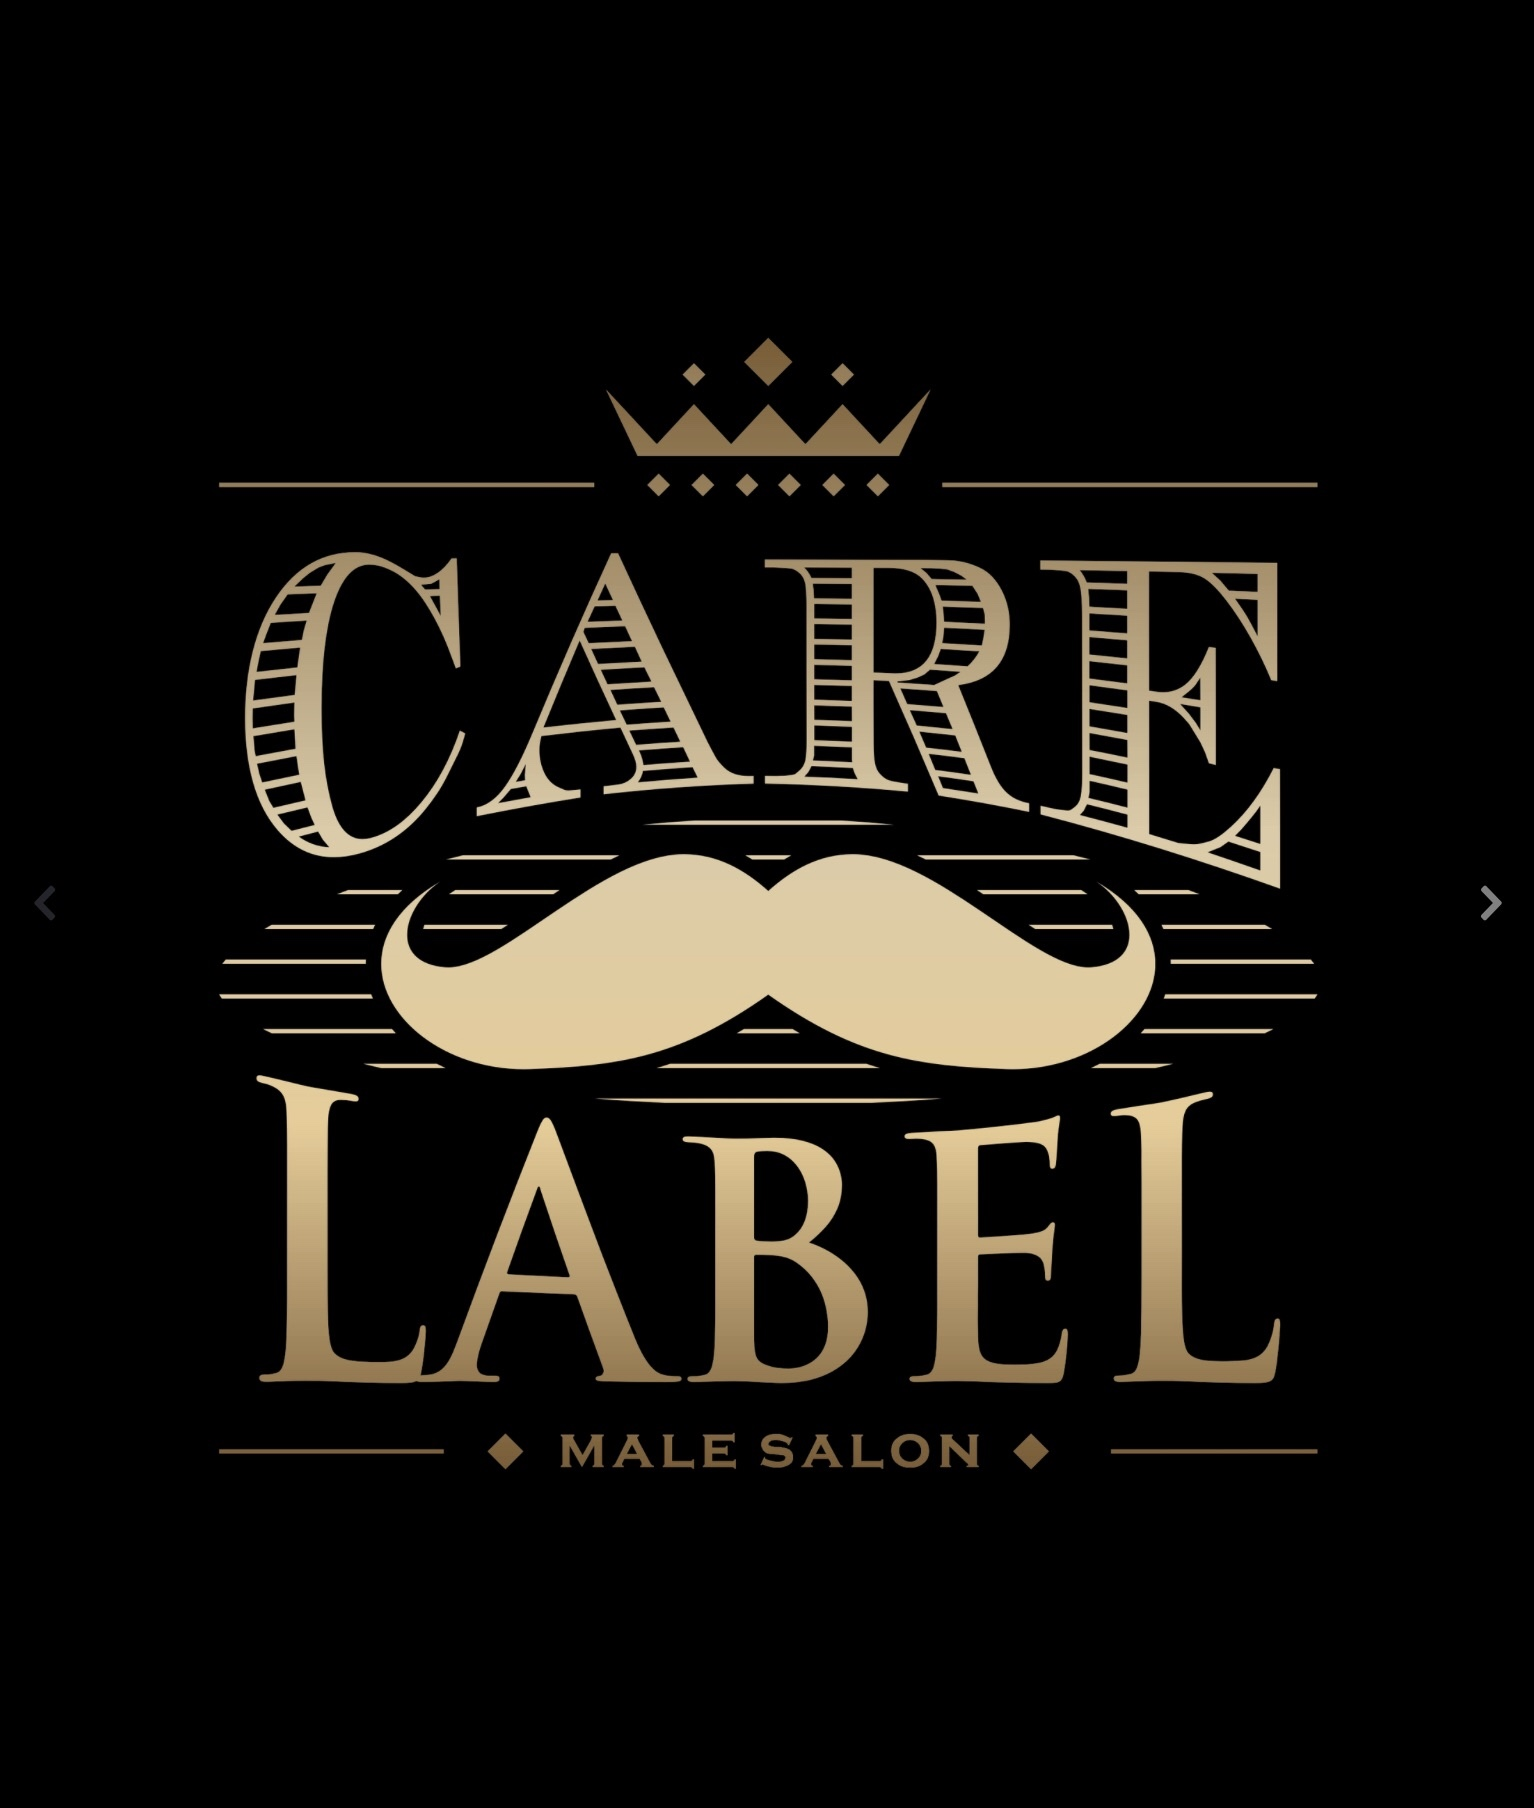 CARELABEL